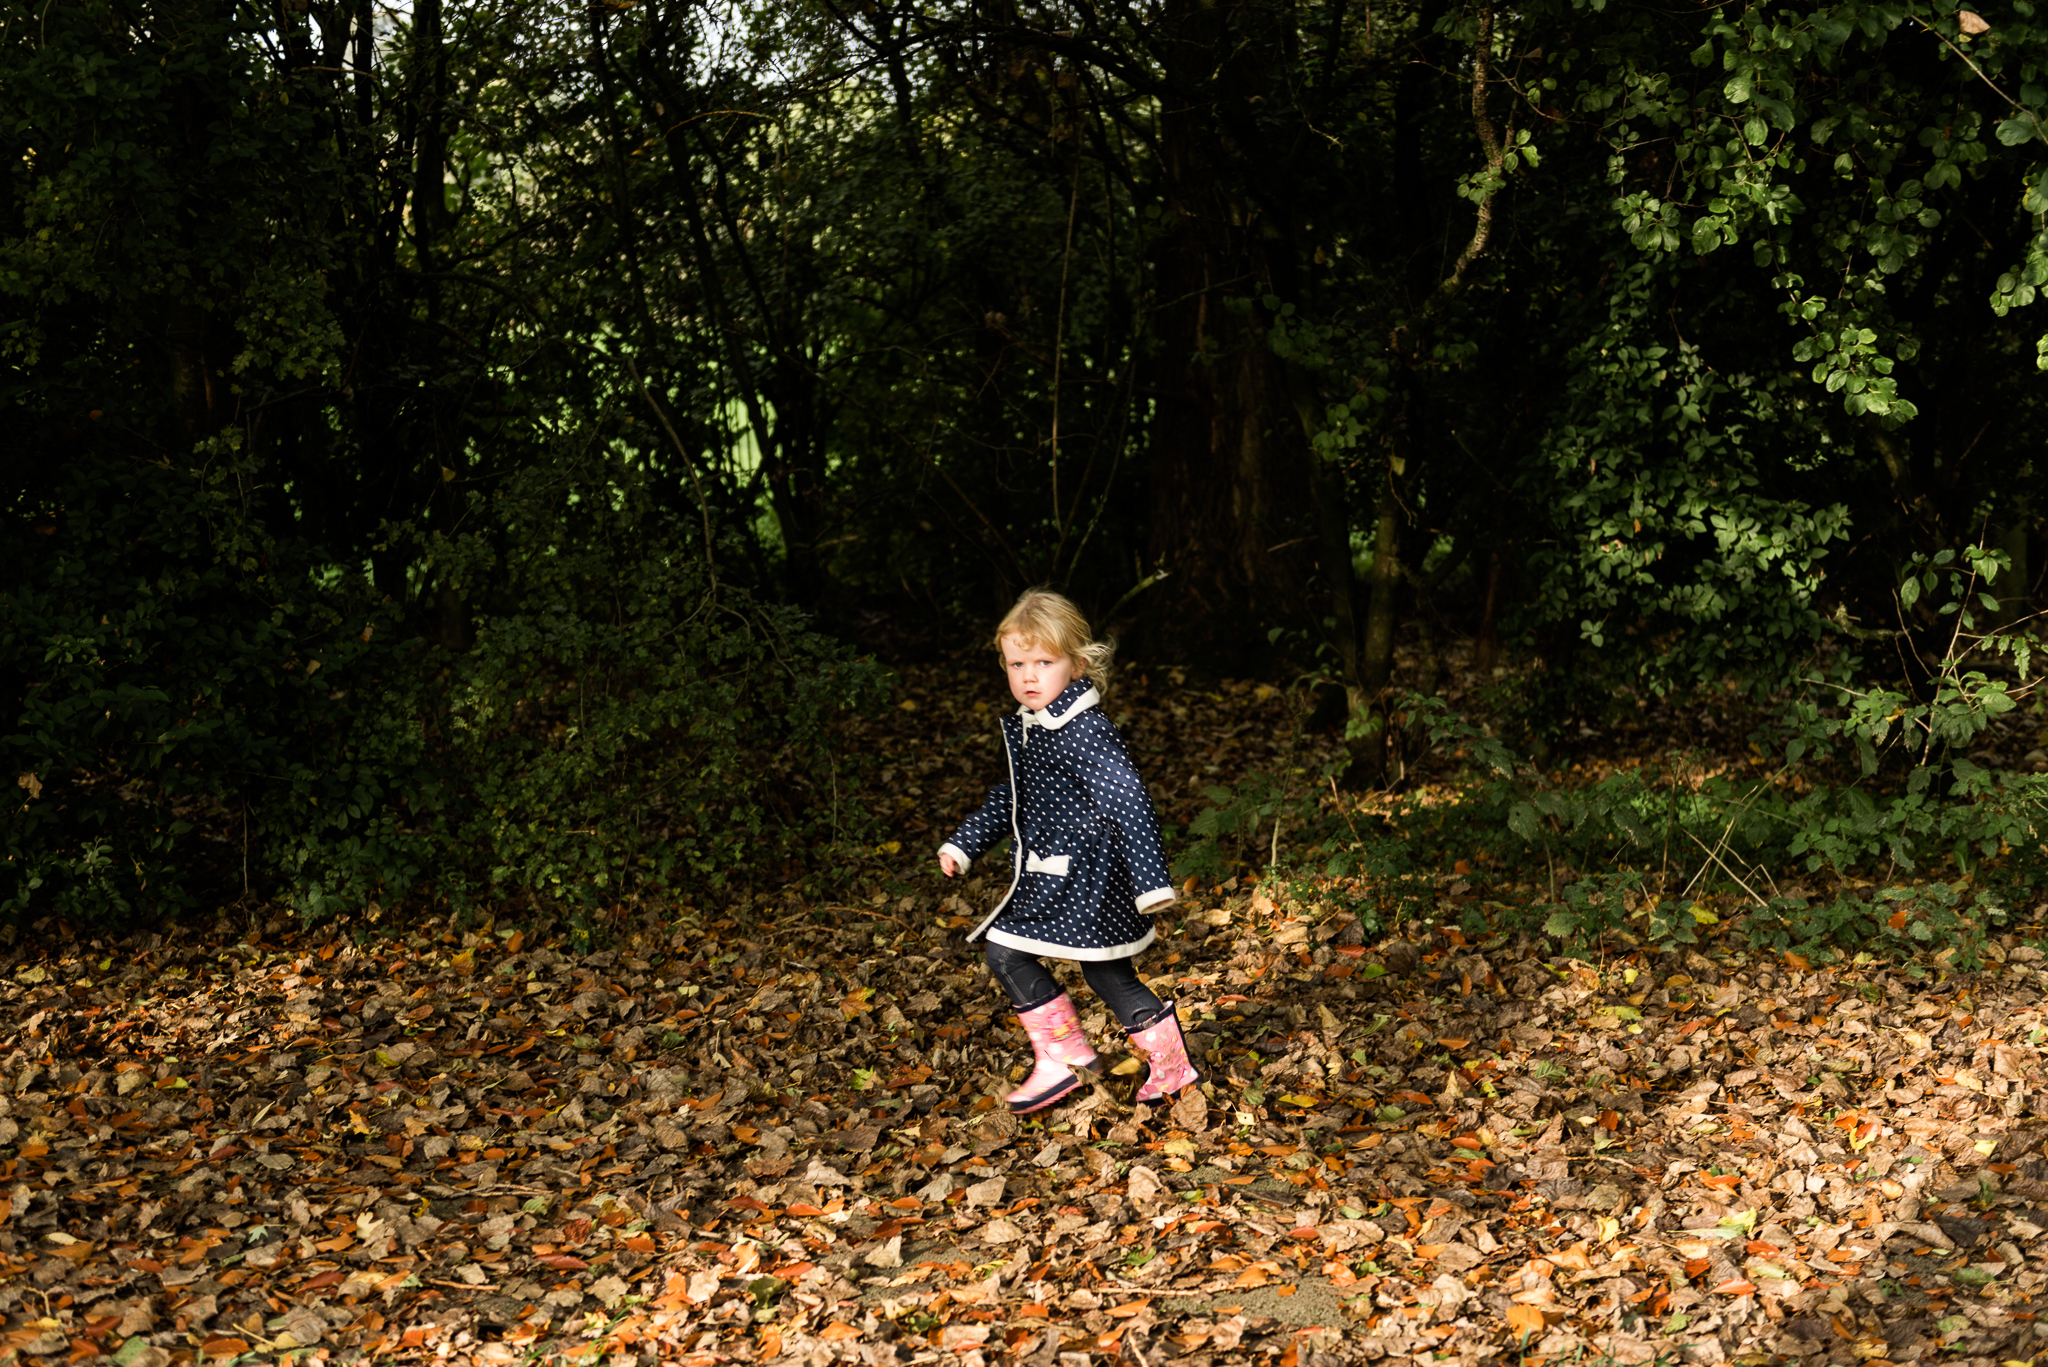 Staffordshire Documentary Family Photography Autumn Lifestyle Fall Leaves - Jenny Harper-13.jpg